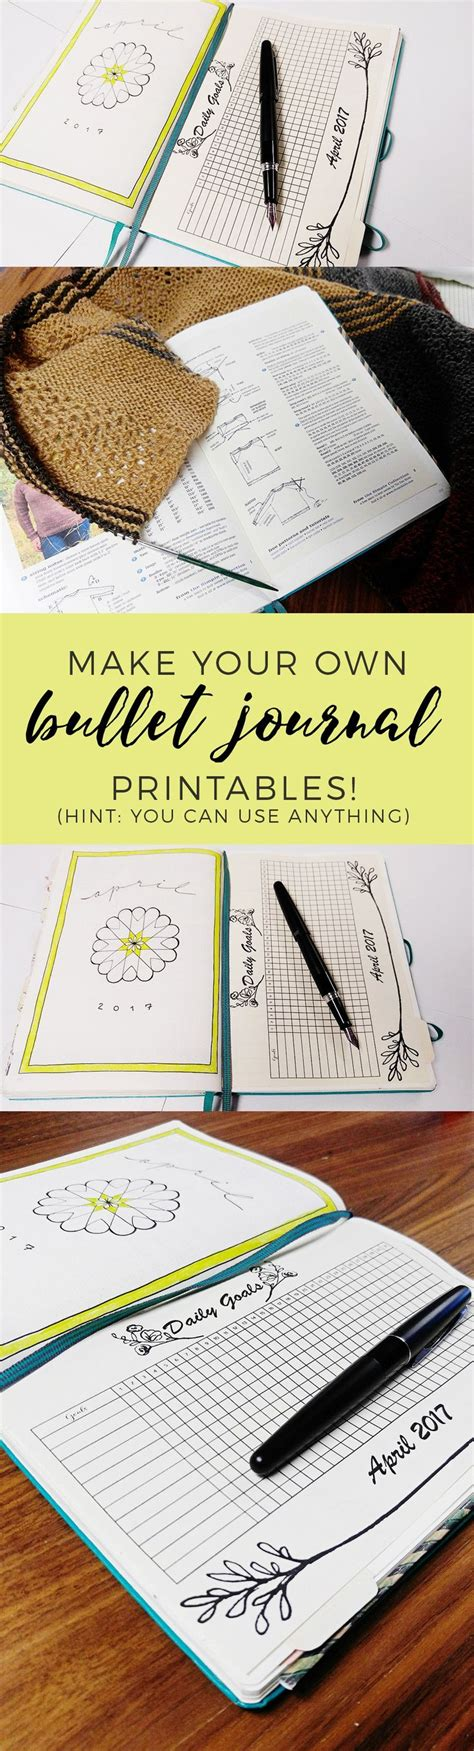 design your own journal online 212 best bullet journal ideas and inspiration images on